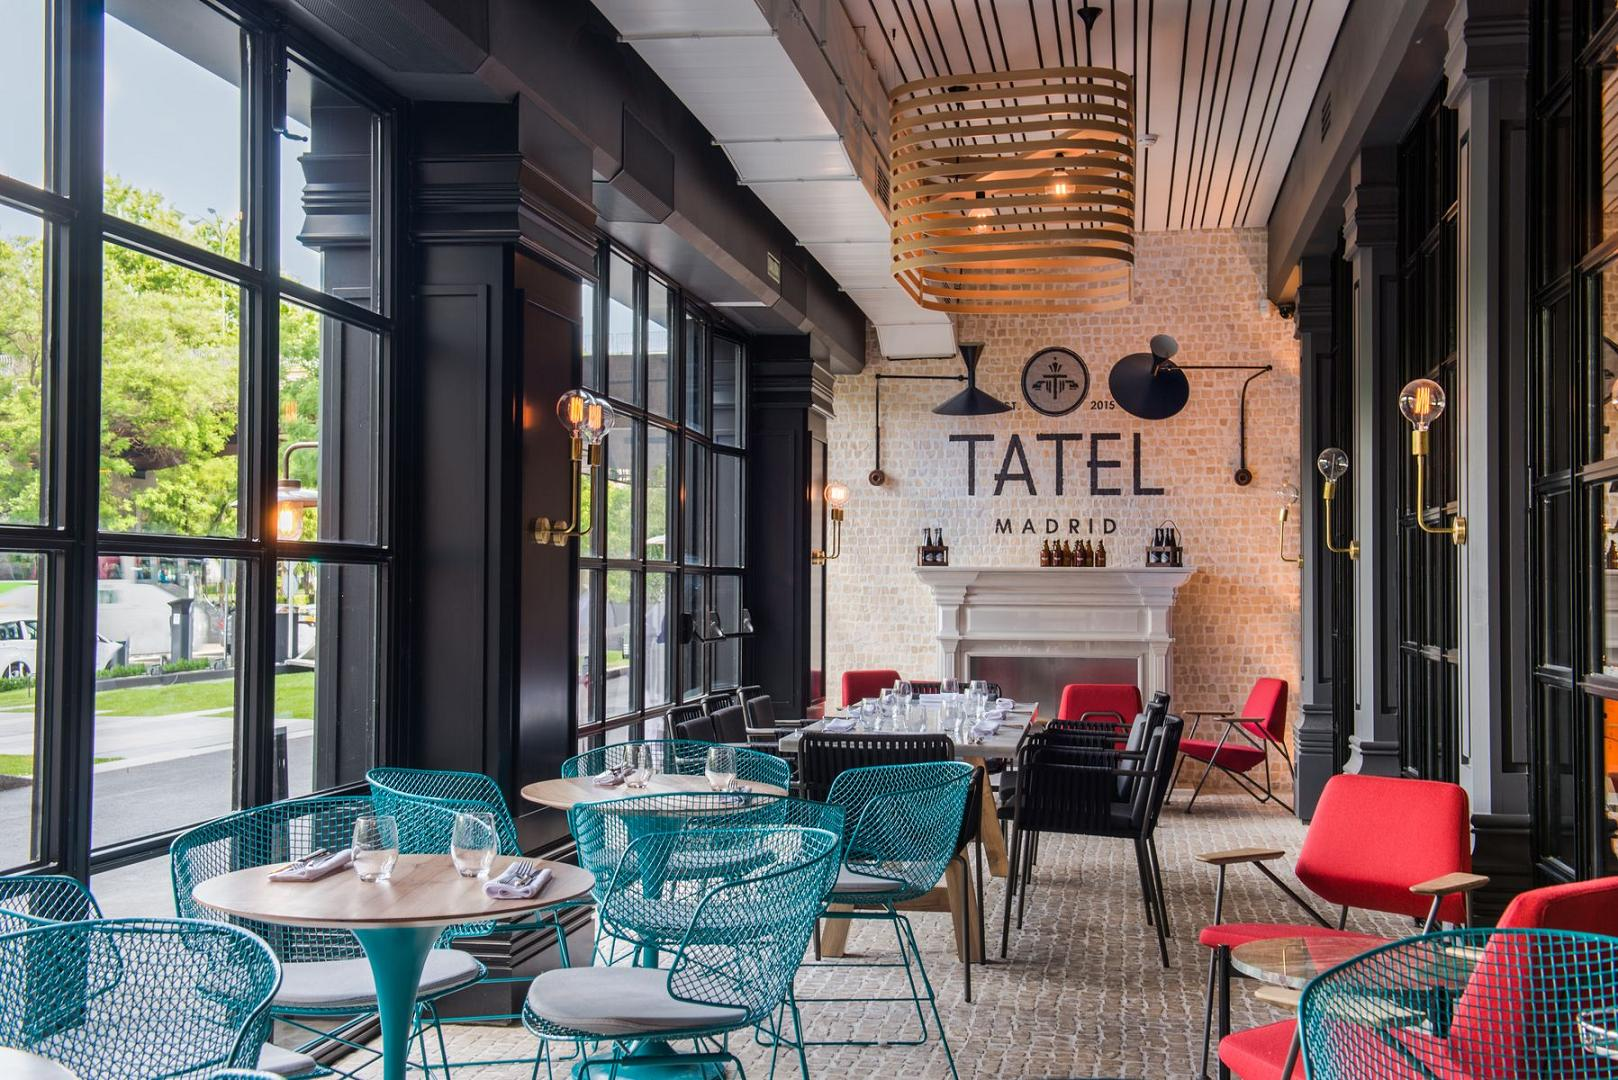 New Madrid Based Restaurant Tatel on Track to Become World Reference for Spanish Cuisine